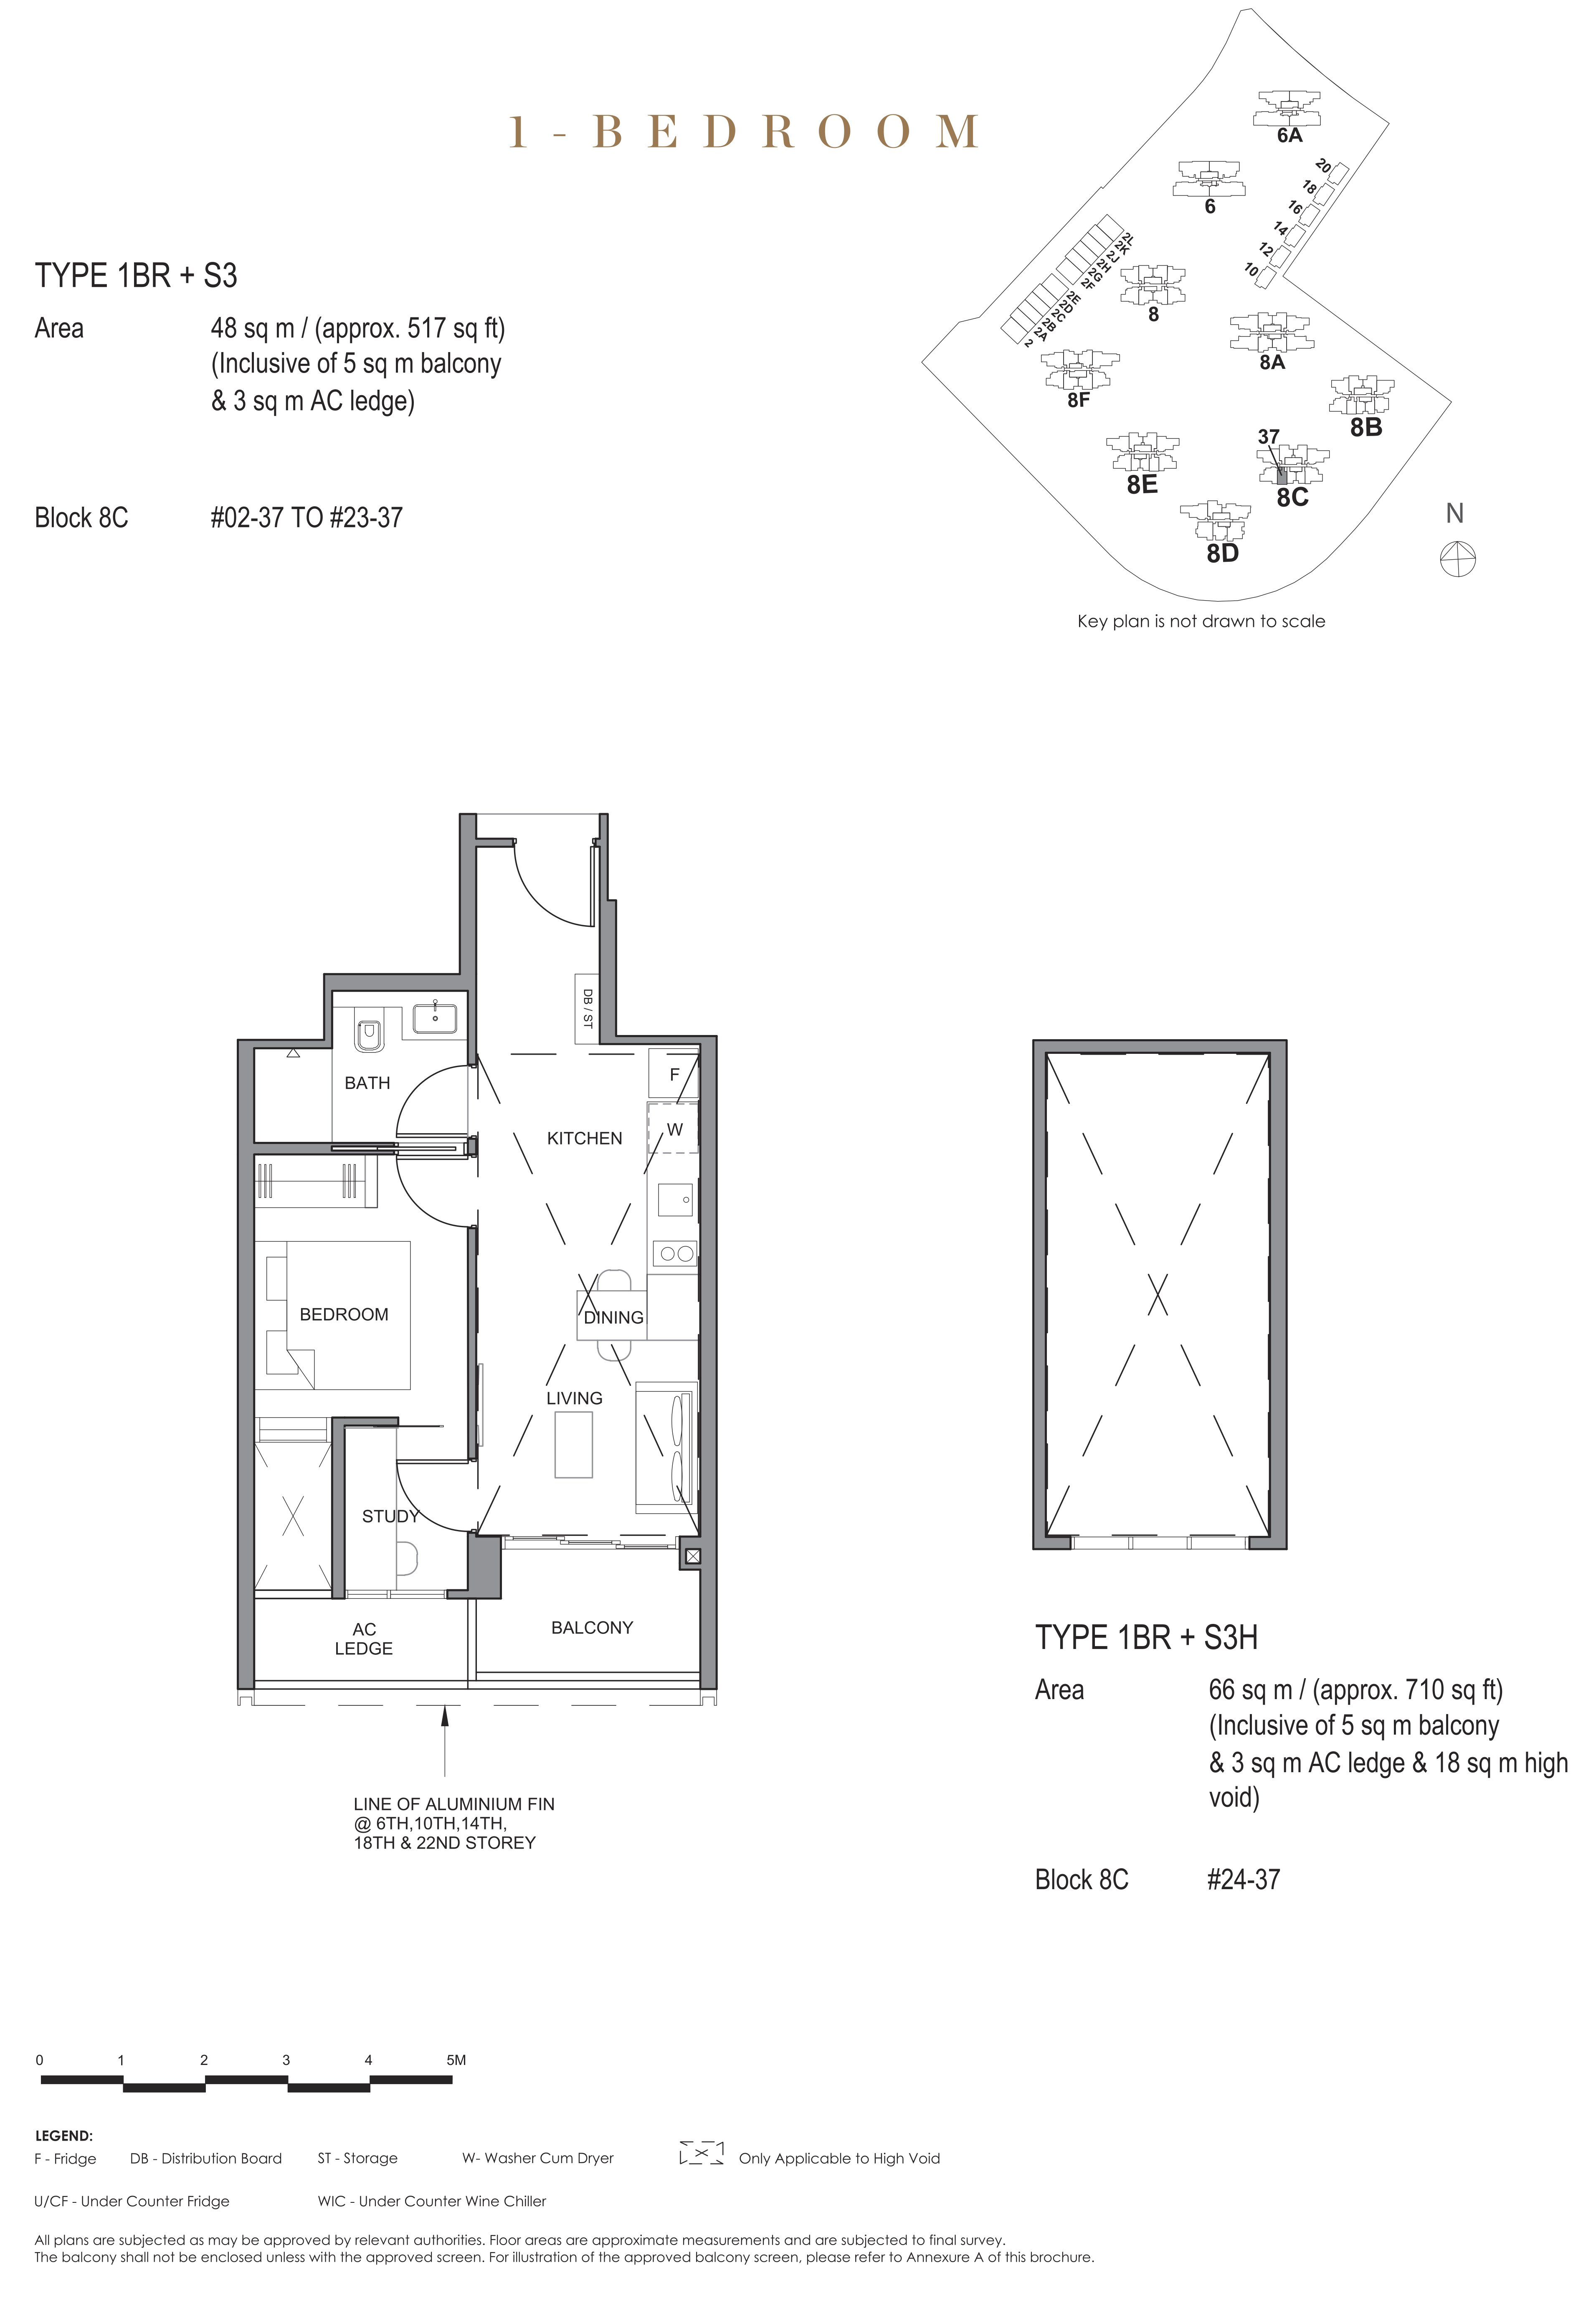 Parc Clematis 锦泰门第 contemporary 1 bedroom 1卧房-书房 1 BR-S3